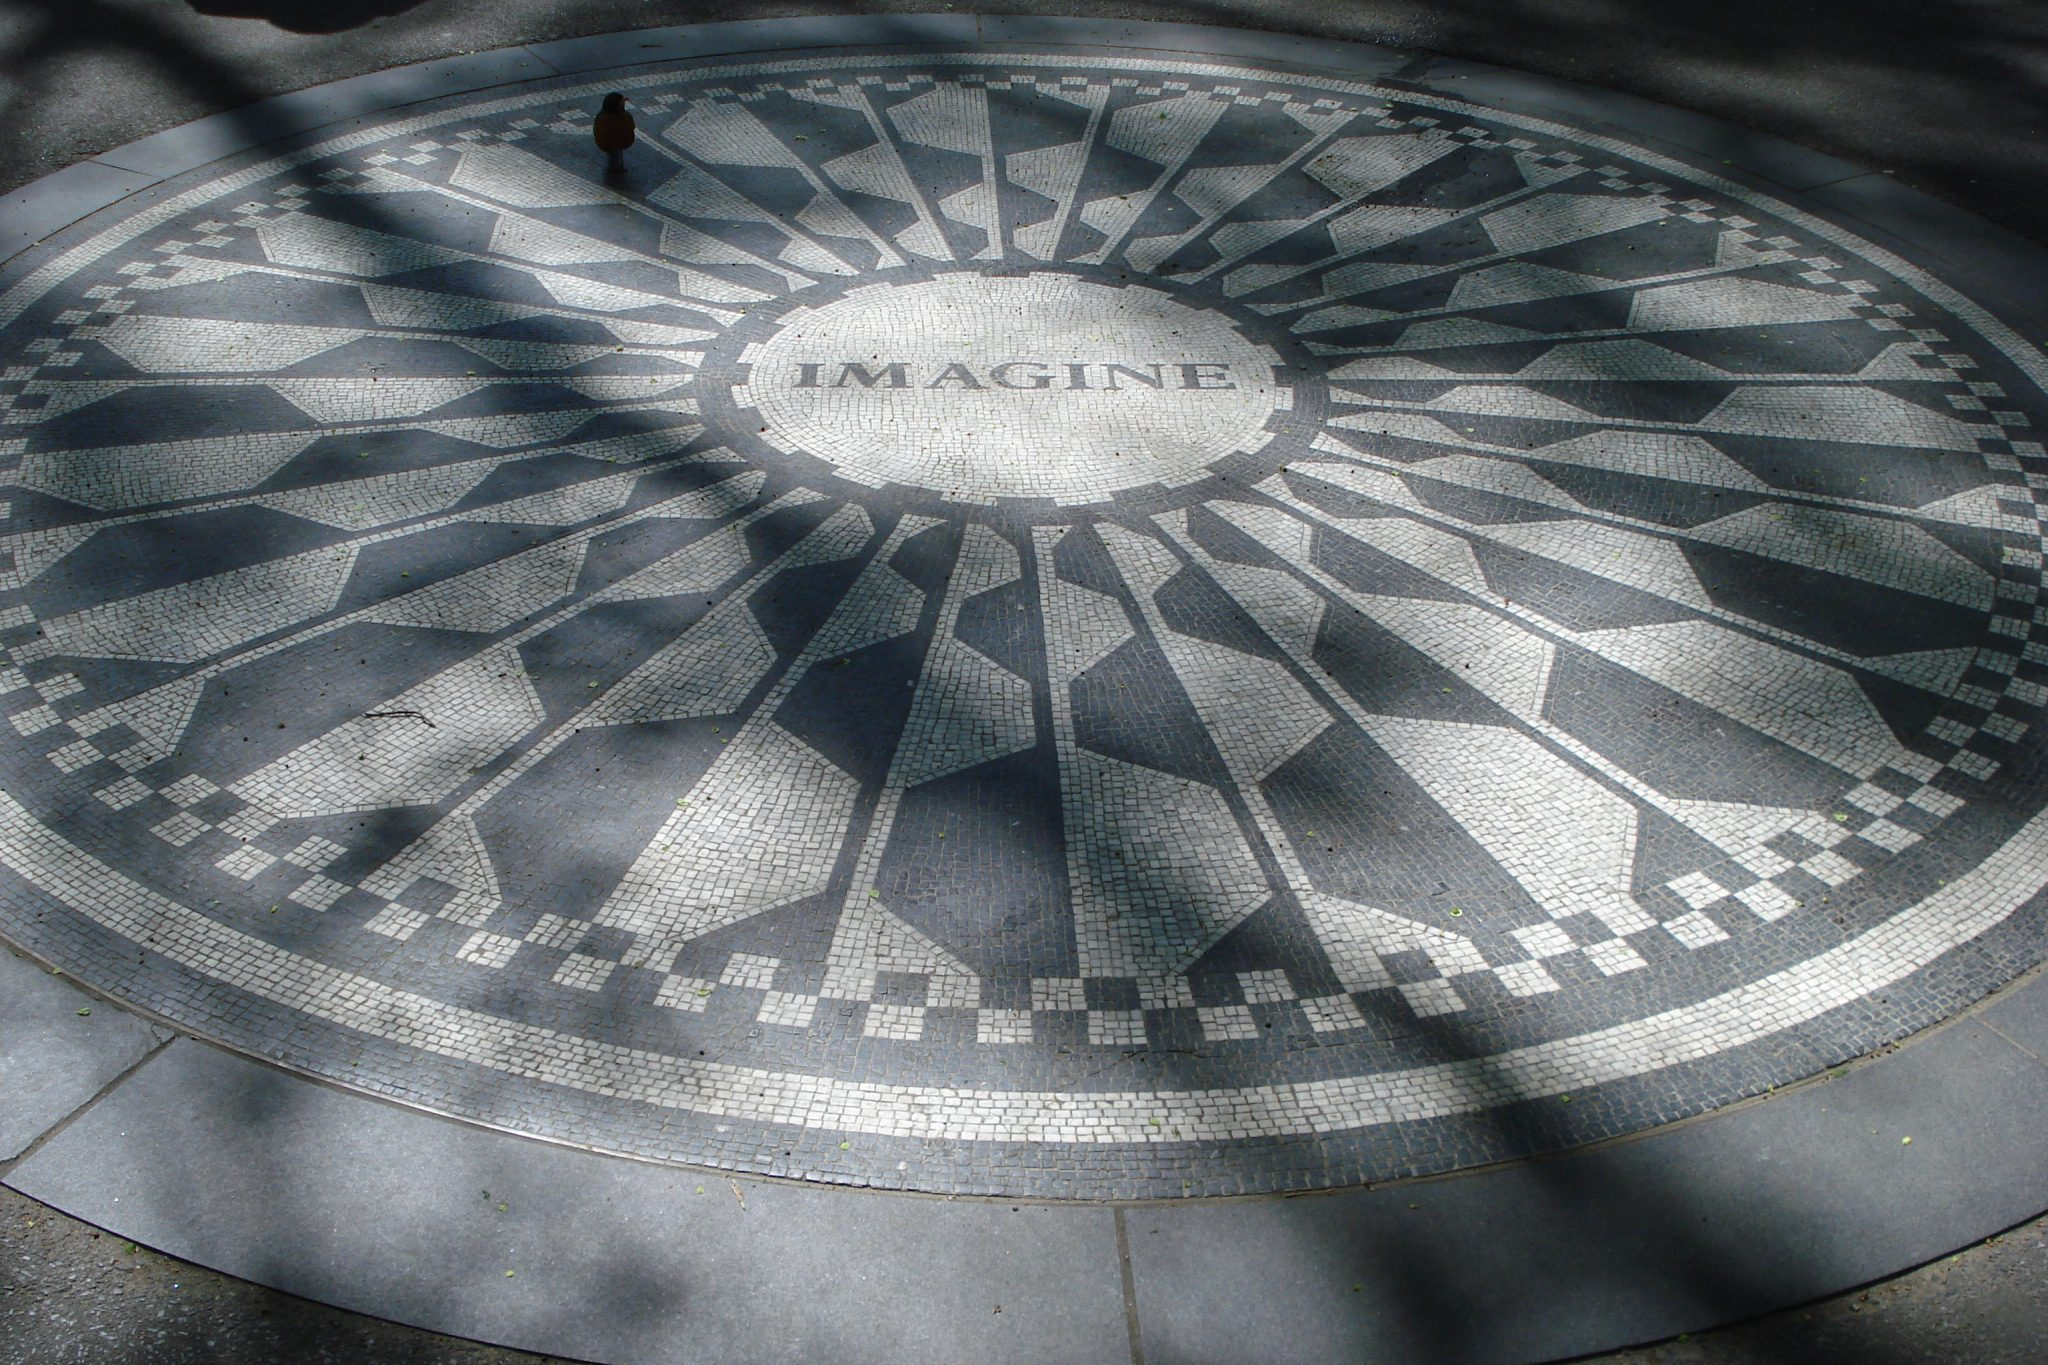 Imagine mosaic in Strawberry Fields in Central Park in April 2010